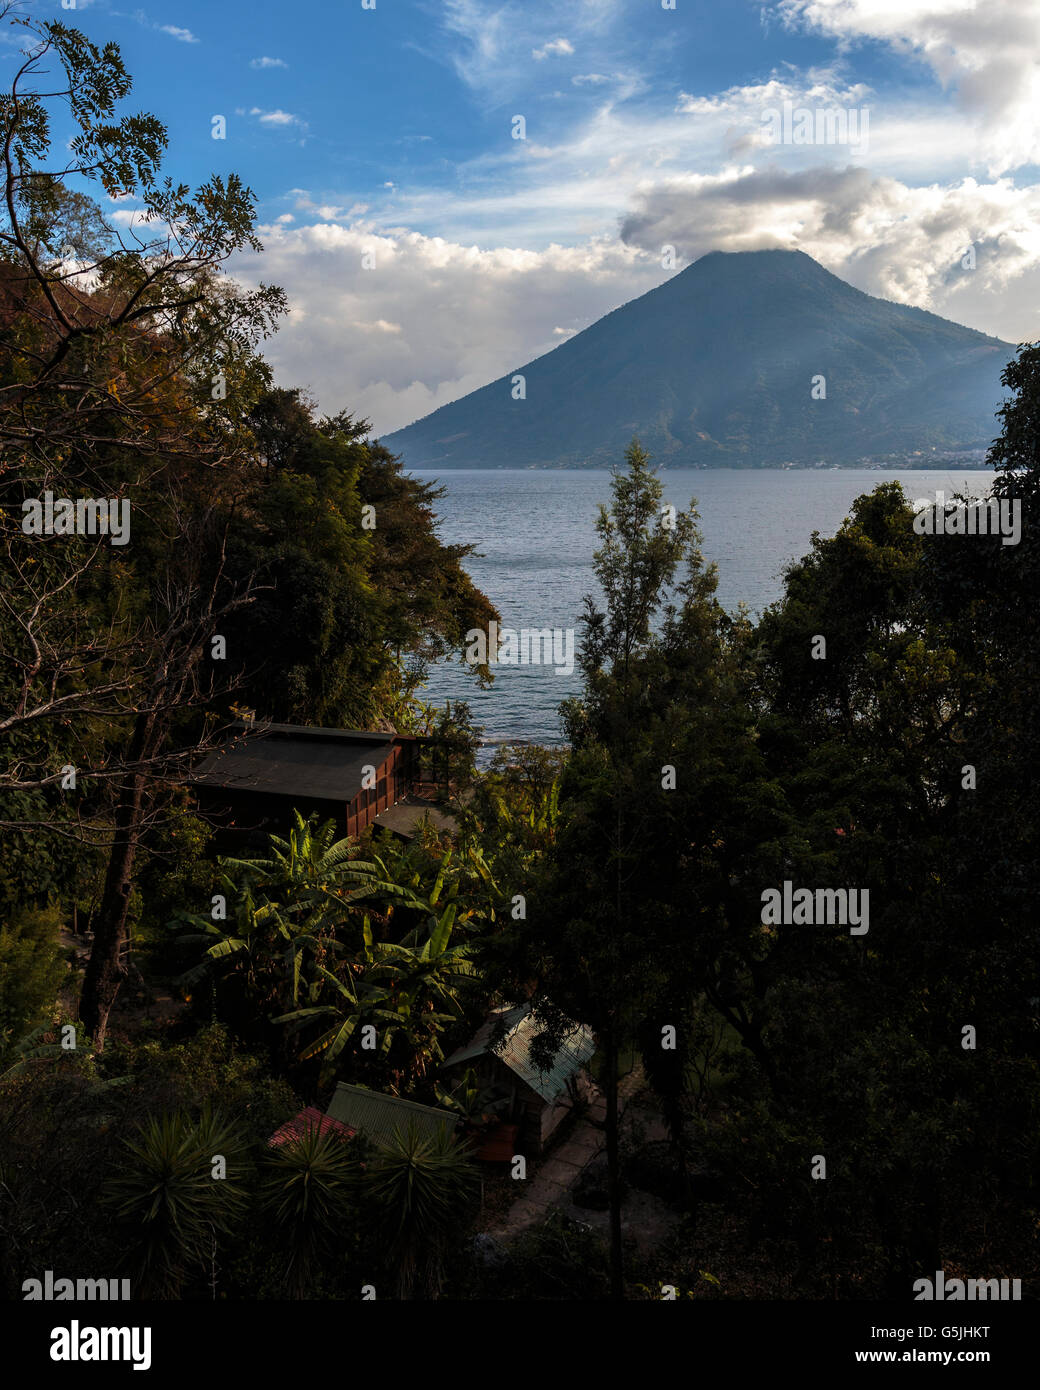 A house tucked away in the forests surrounding Lake Atitlan in Guatemala on the edge of the town of San Marcos. - Stock Image